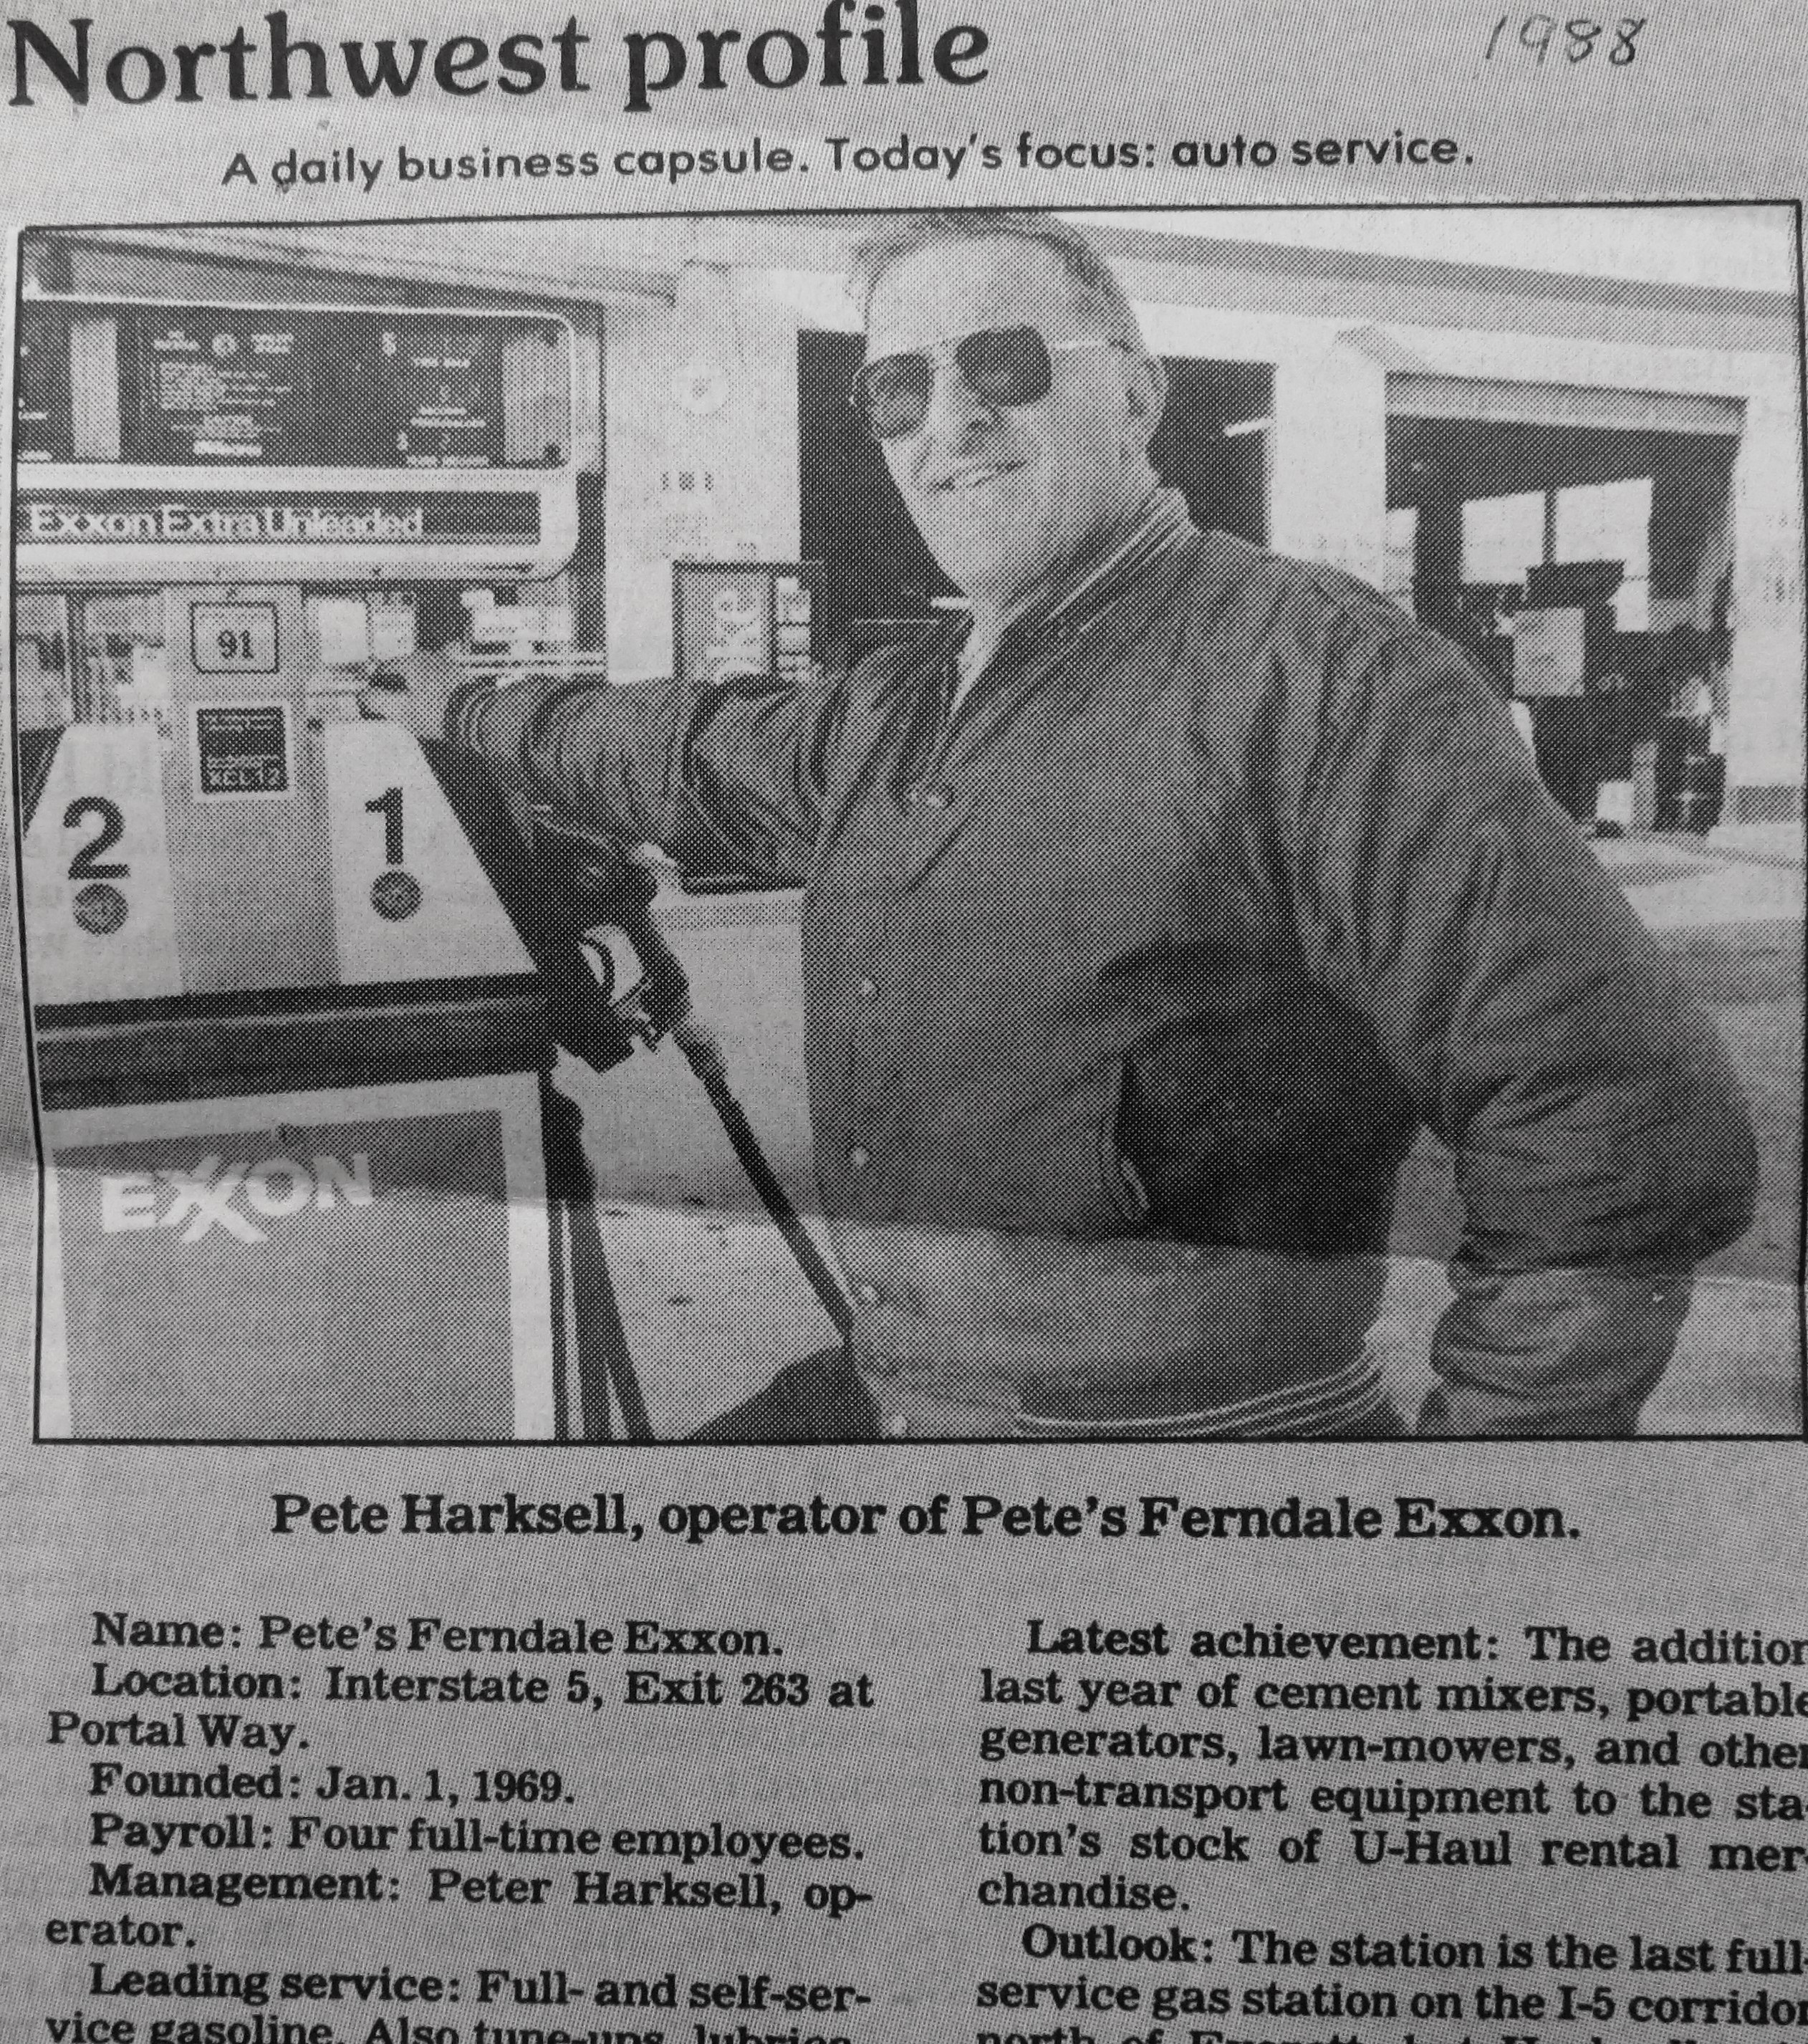 1988 newspaper clipping of a business feature about Pete's Ferndale Exxon. courtesy of Pete, Jr. and Nita Harksell